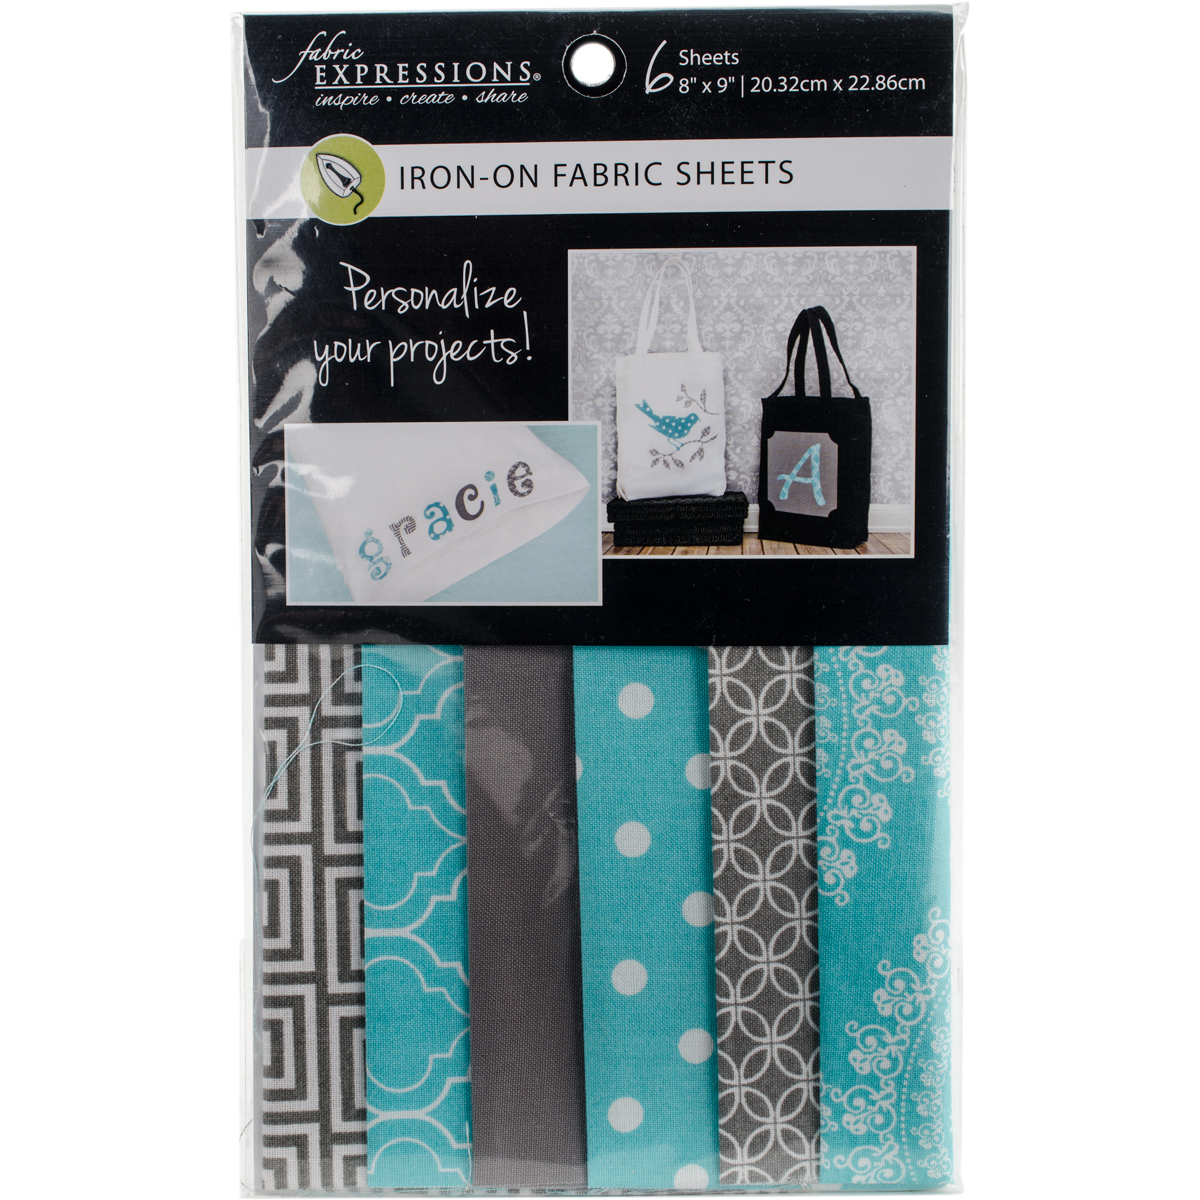 "Fabric Editions Fusible Sheets 8""X9"" 6/Pkg-Gray & Turquoise"